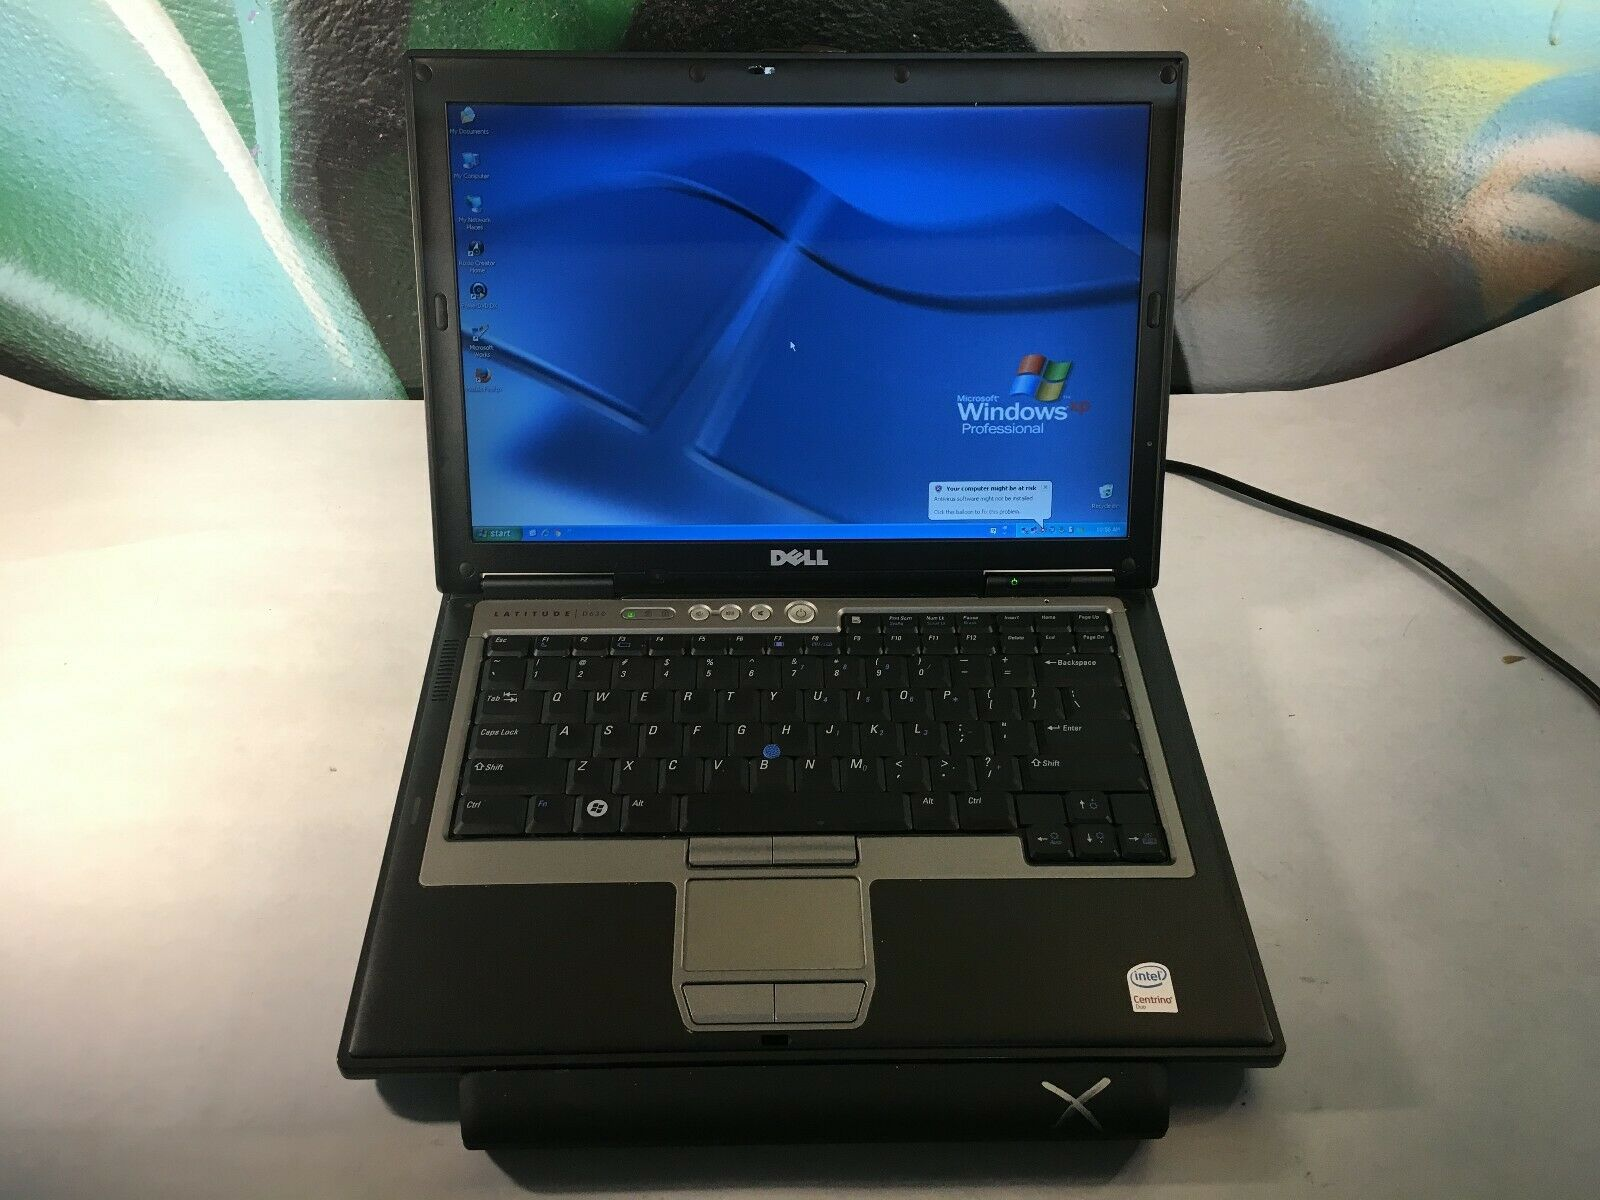 Laptop Windows - Dell D620 Laptop / 80GB / 2GB / Windows XP Pro SP3 / SERIAL RS-232 PORT